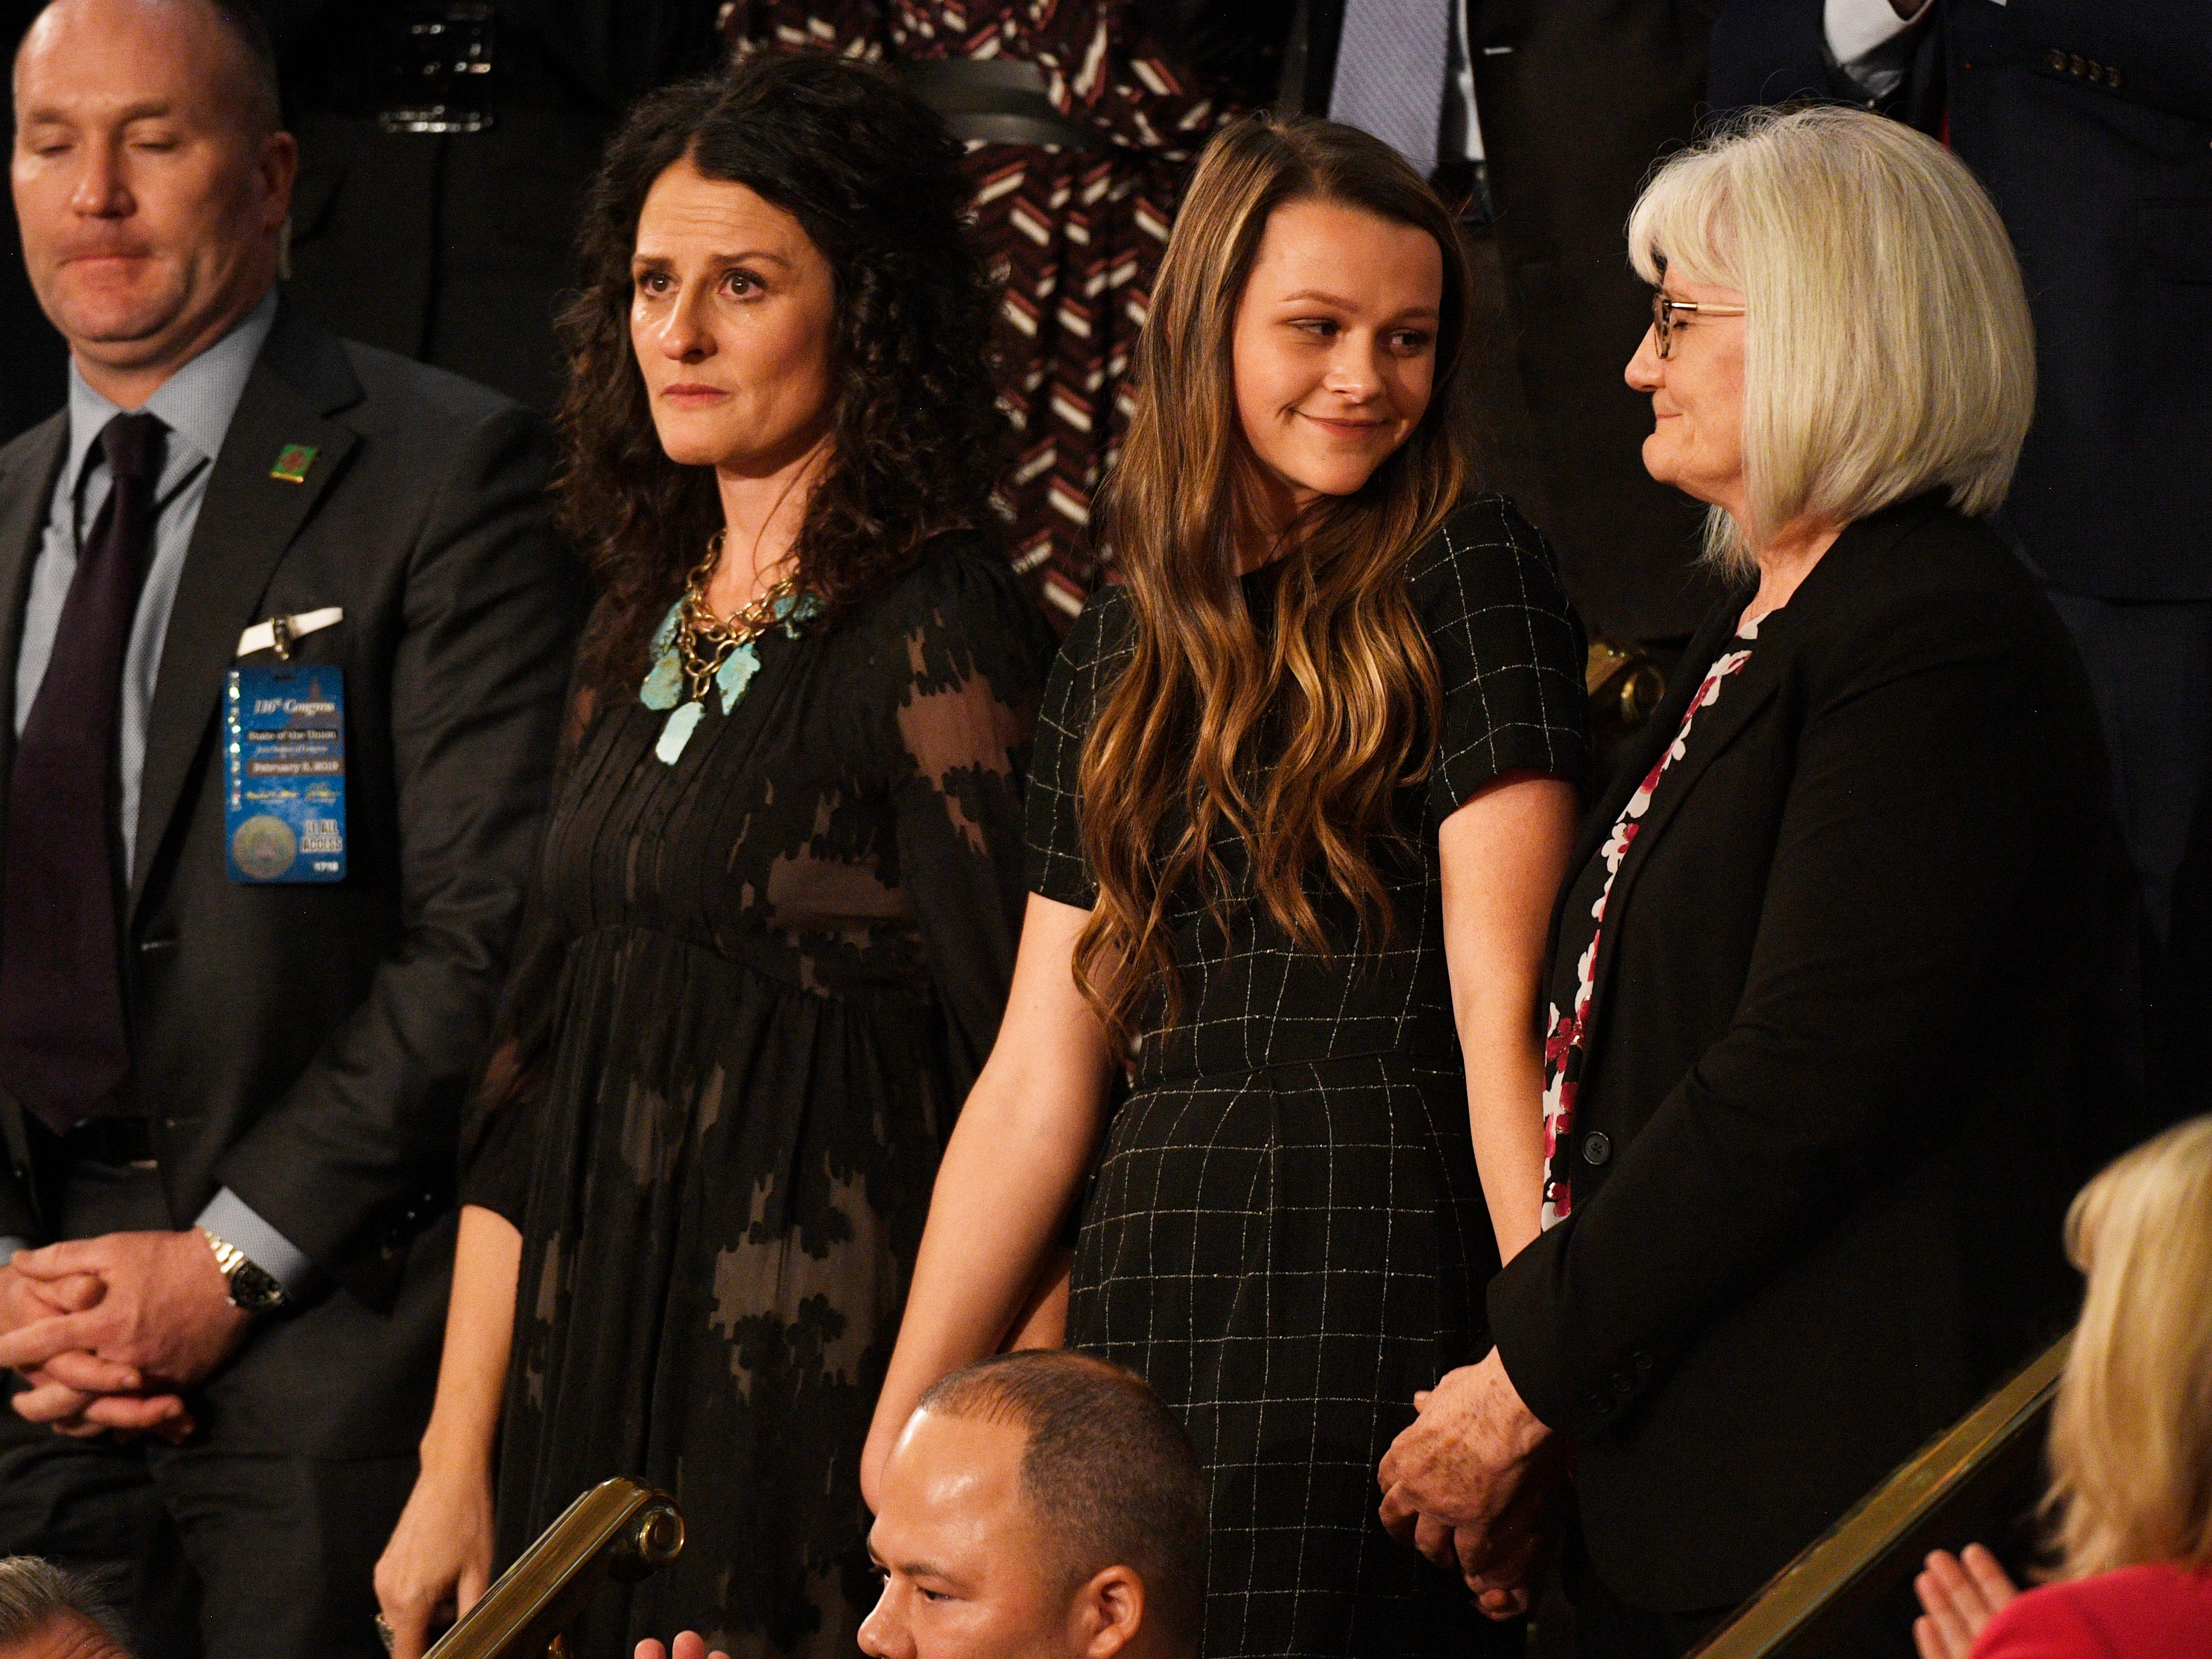 Debra Bissell, Heather Armstrong, and Madison Armstrong are recognized by President Donald Trump during the State of the Union address.